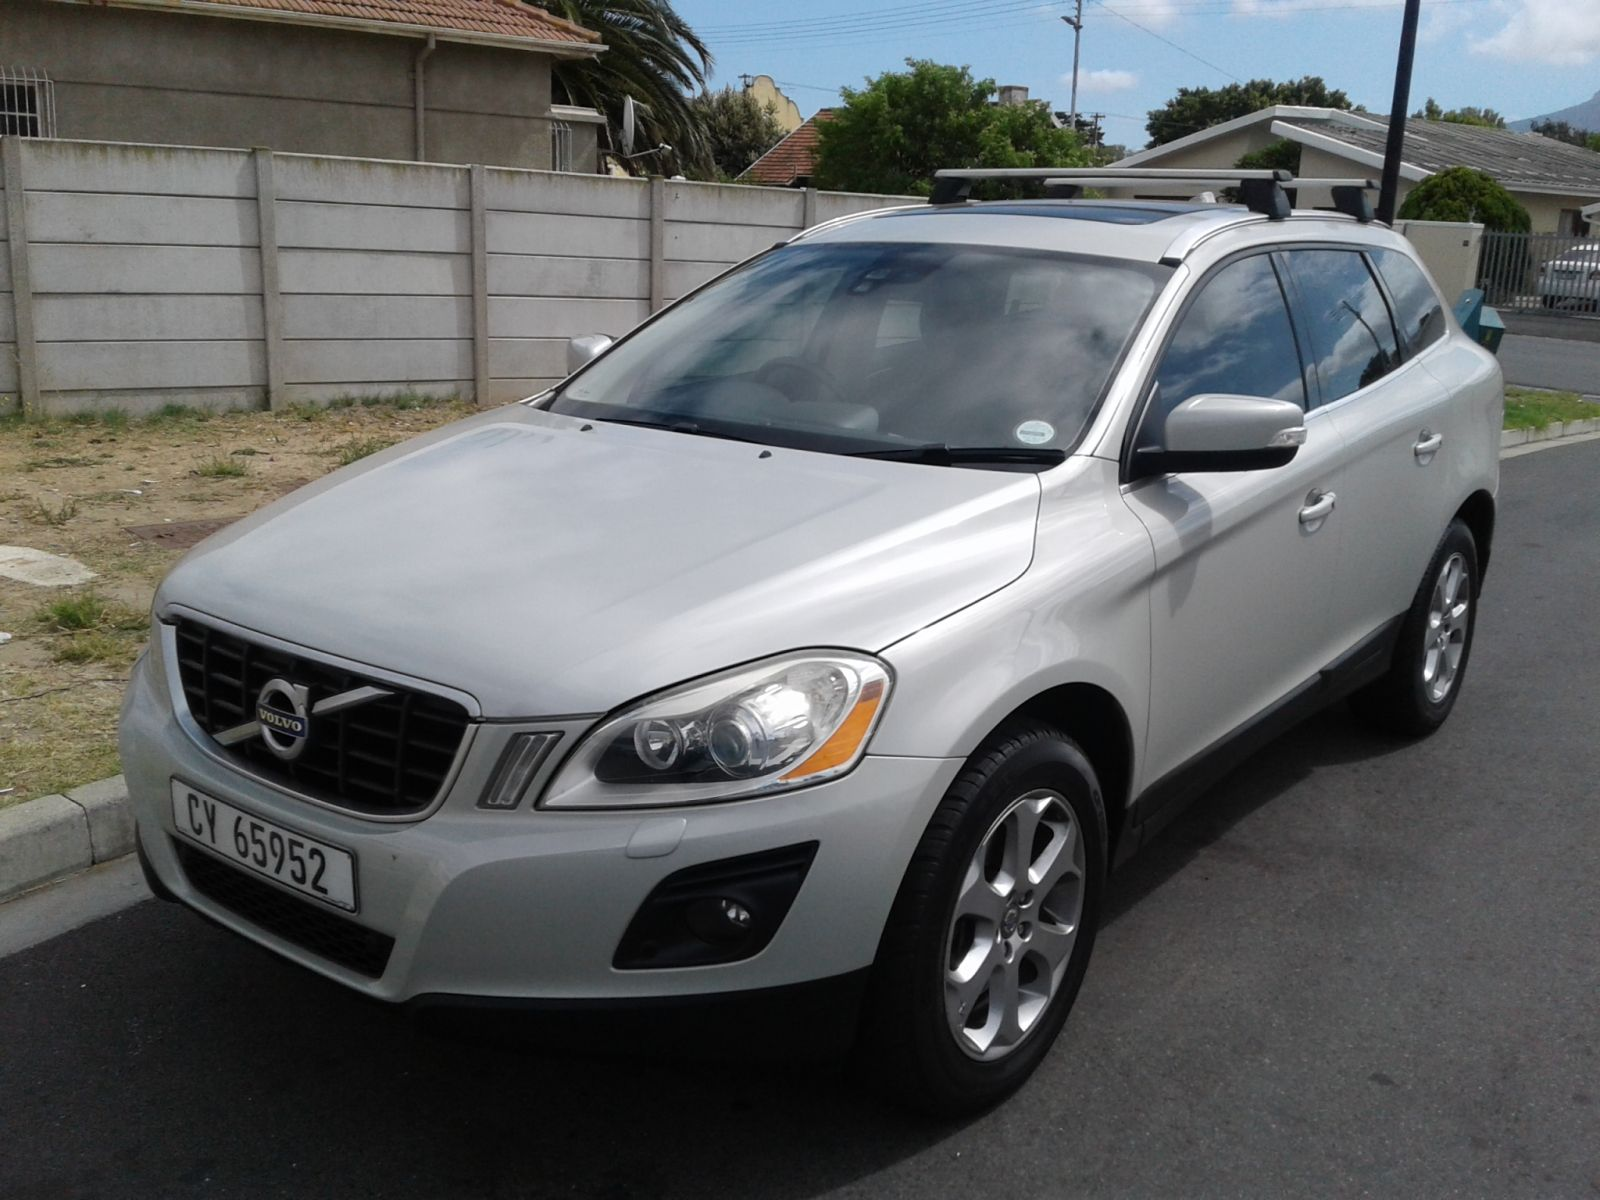 XC60 3.0T GEARTRONIC